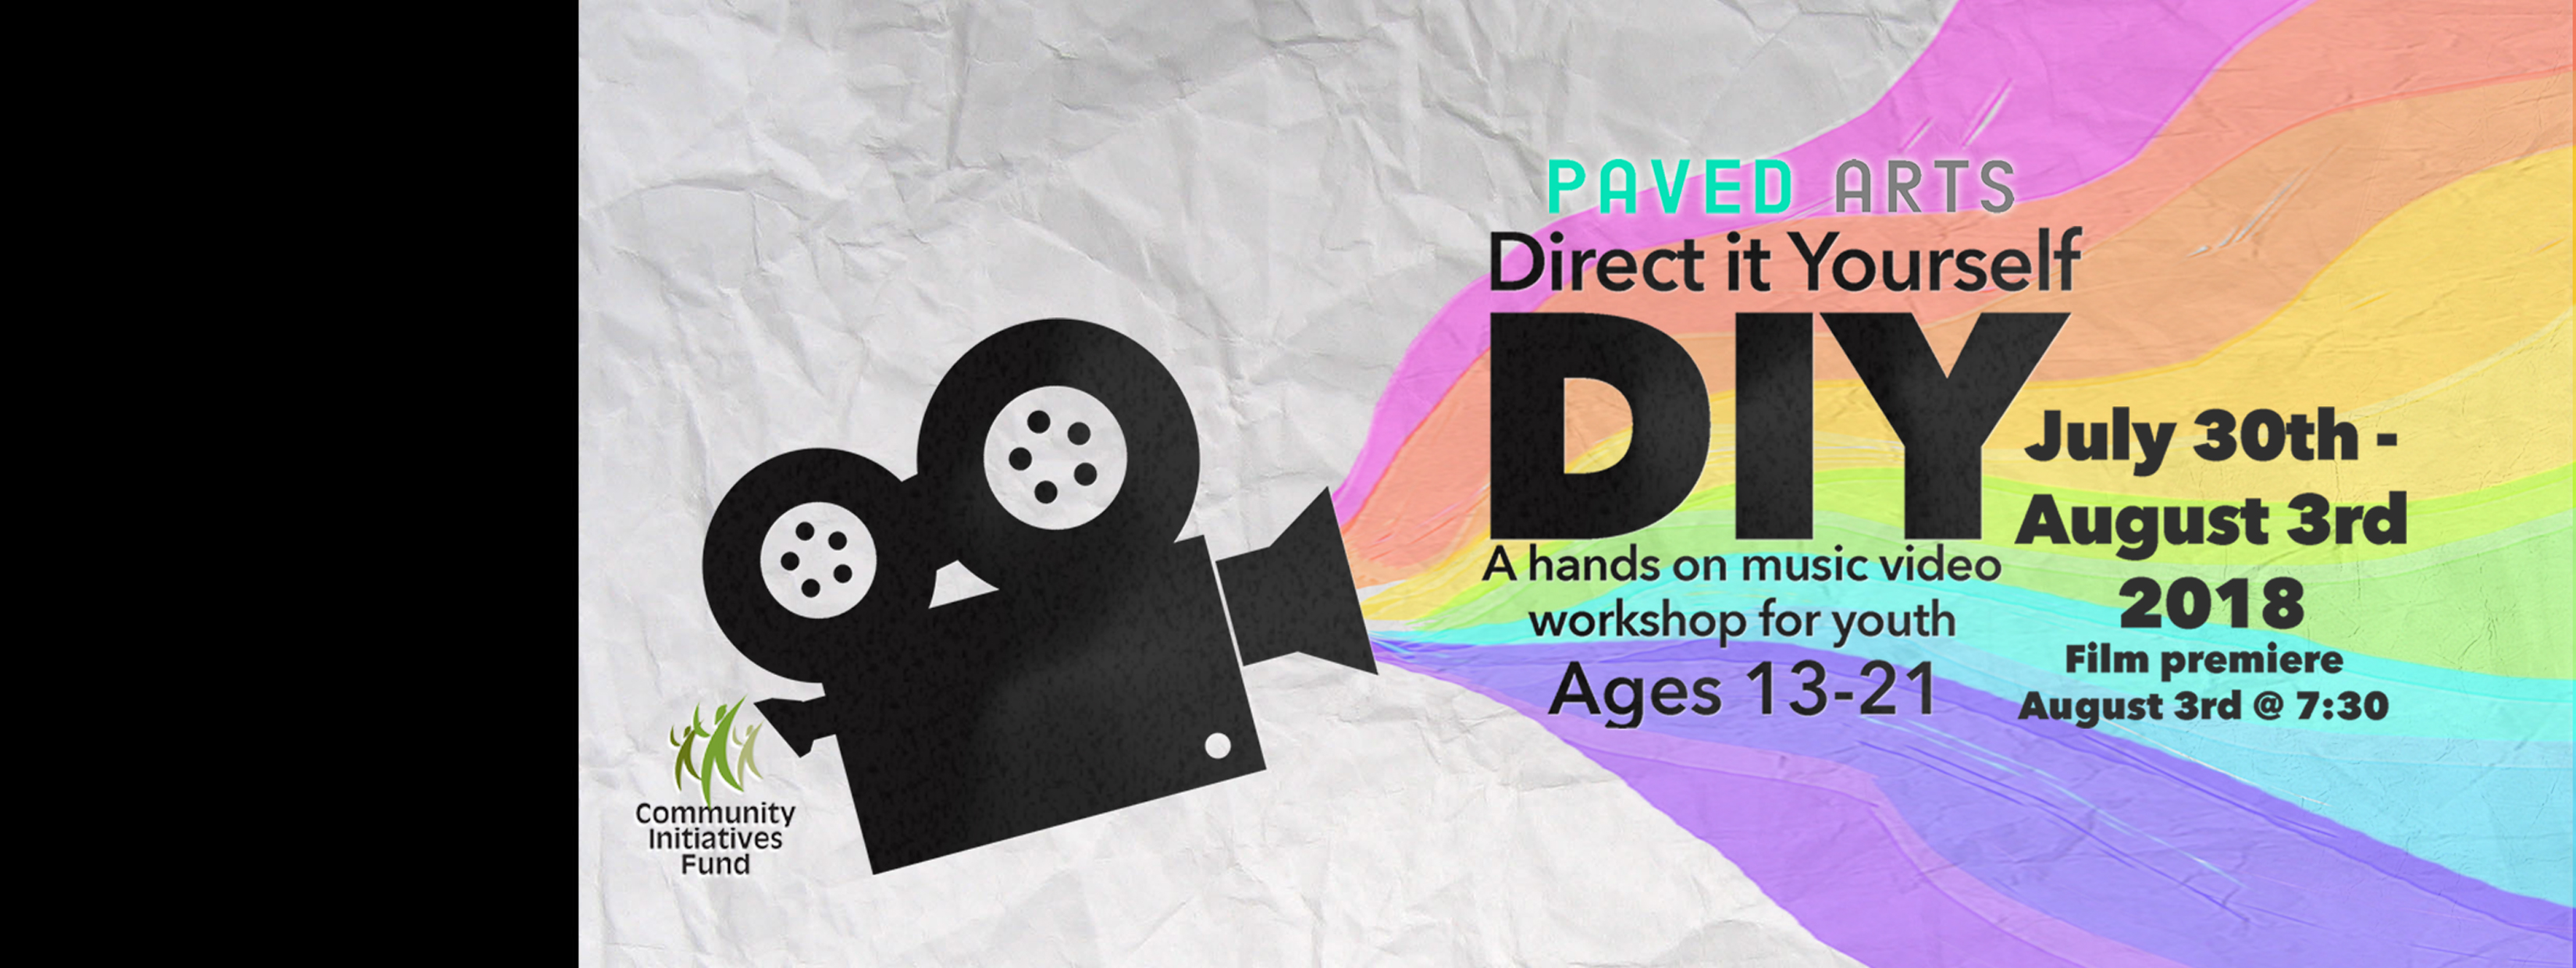 DIY : Direct It Yourself, Music Video Camp for Youth